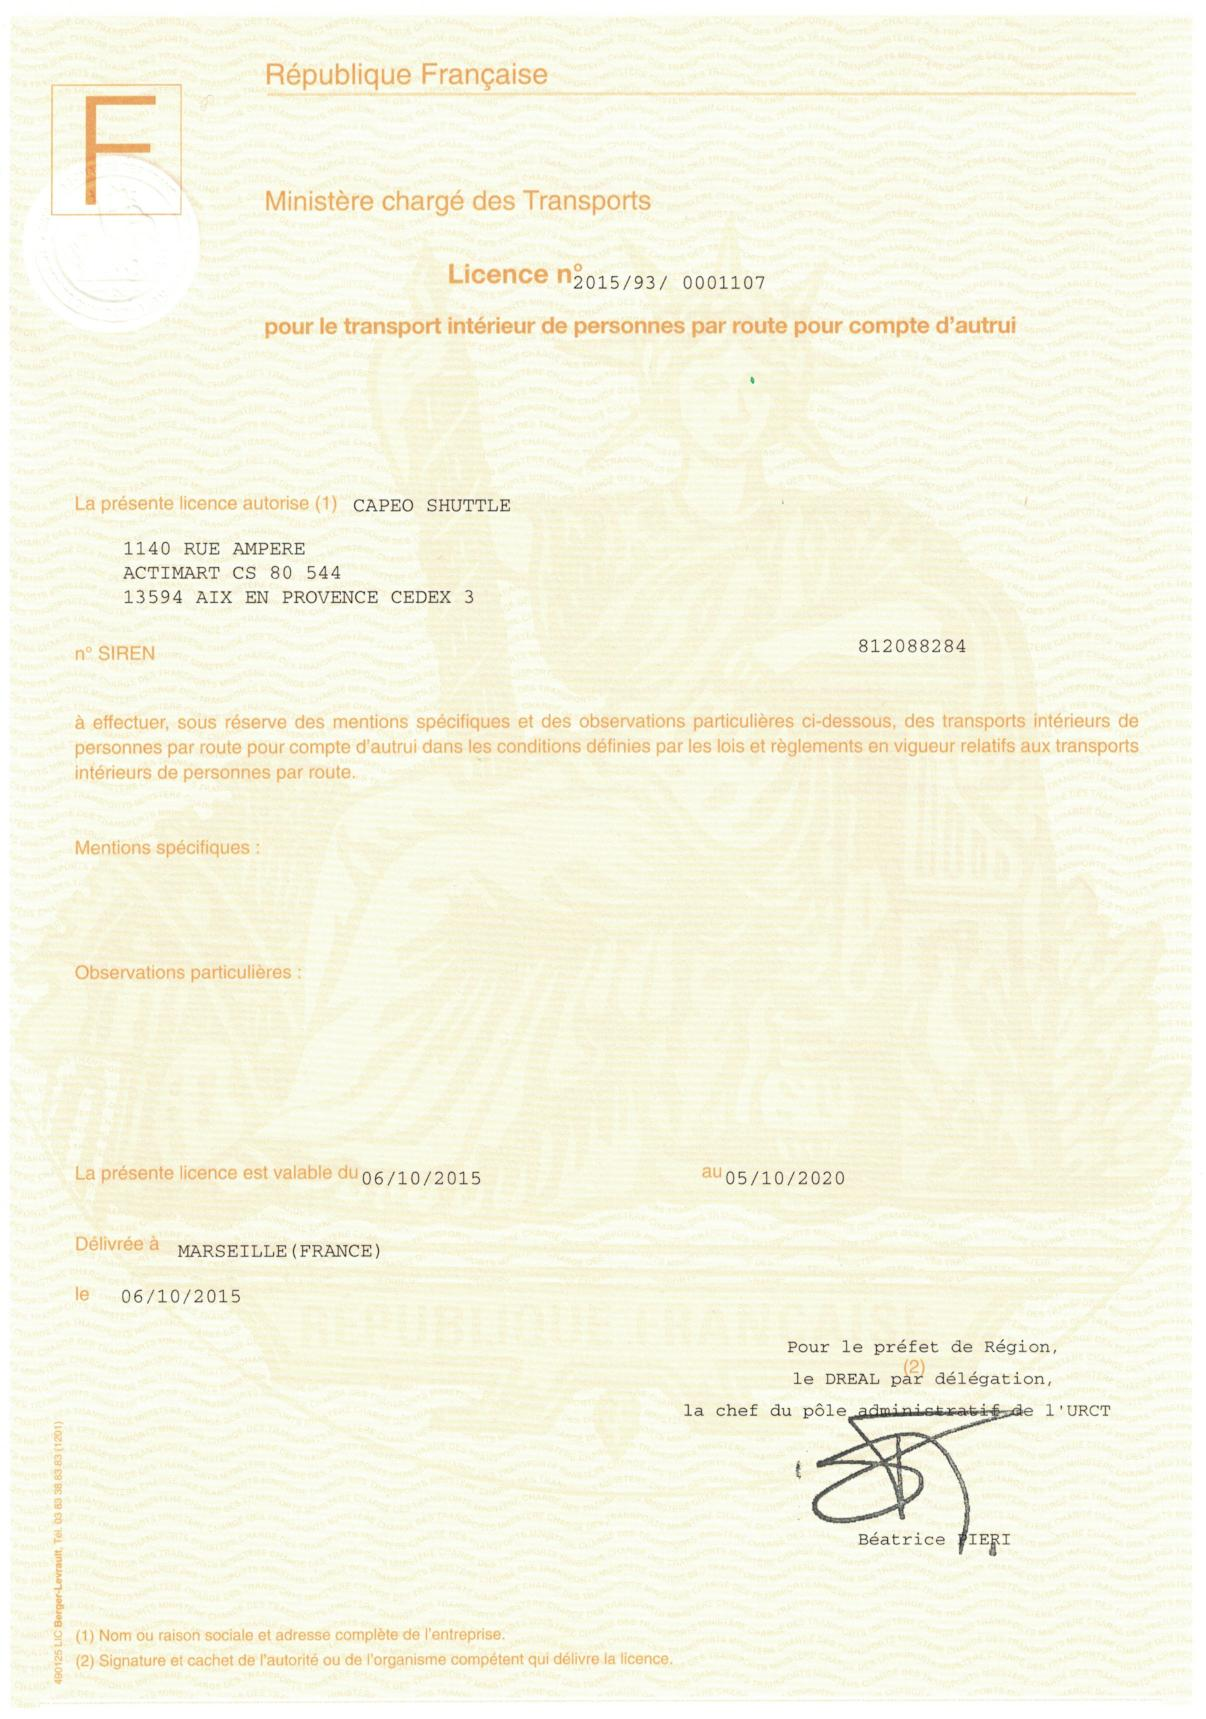 Capeo Shuttle transport licence